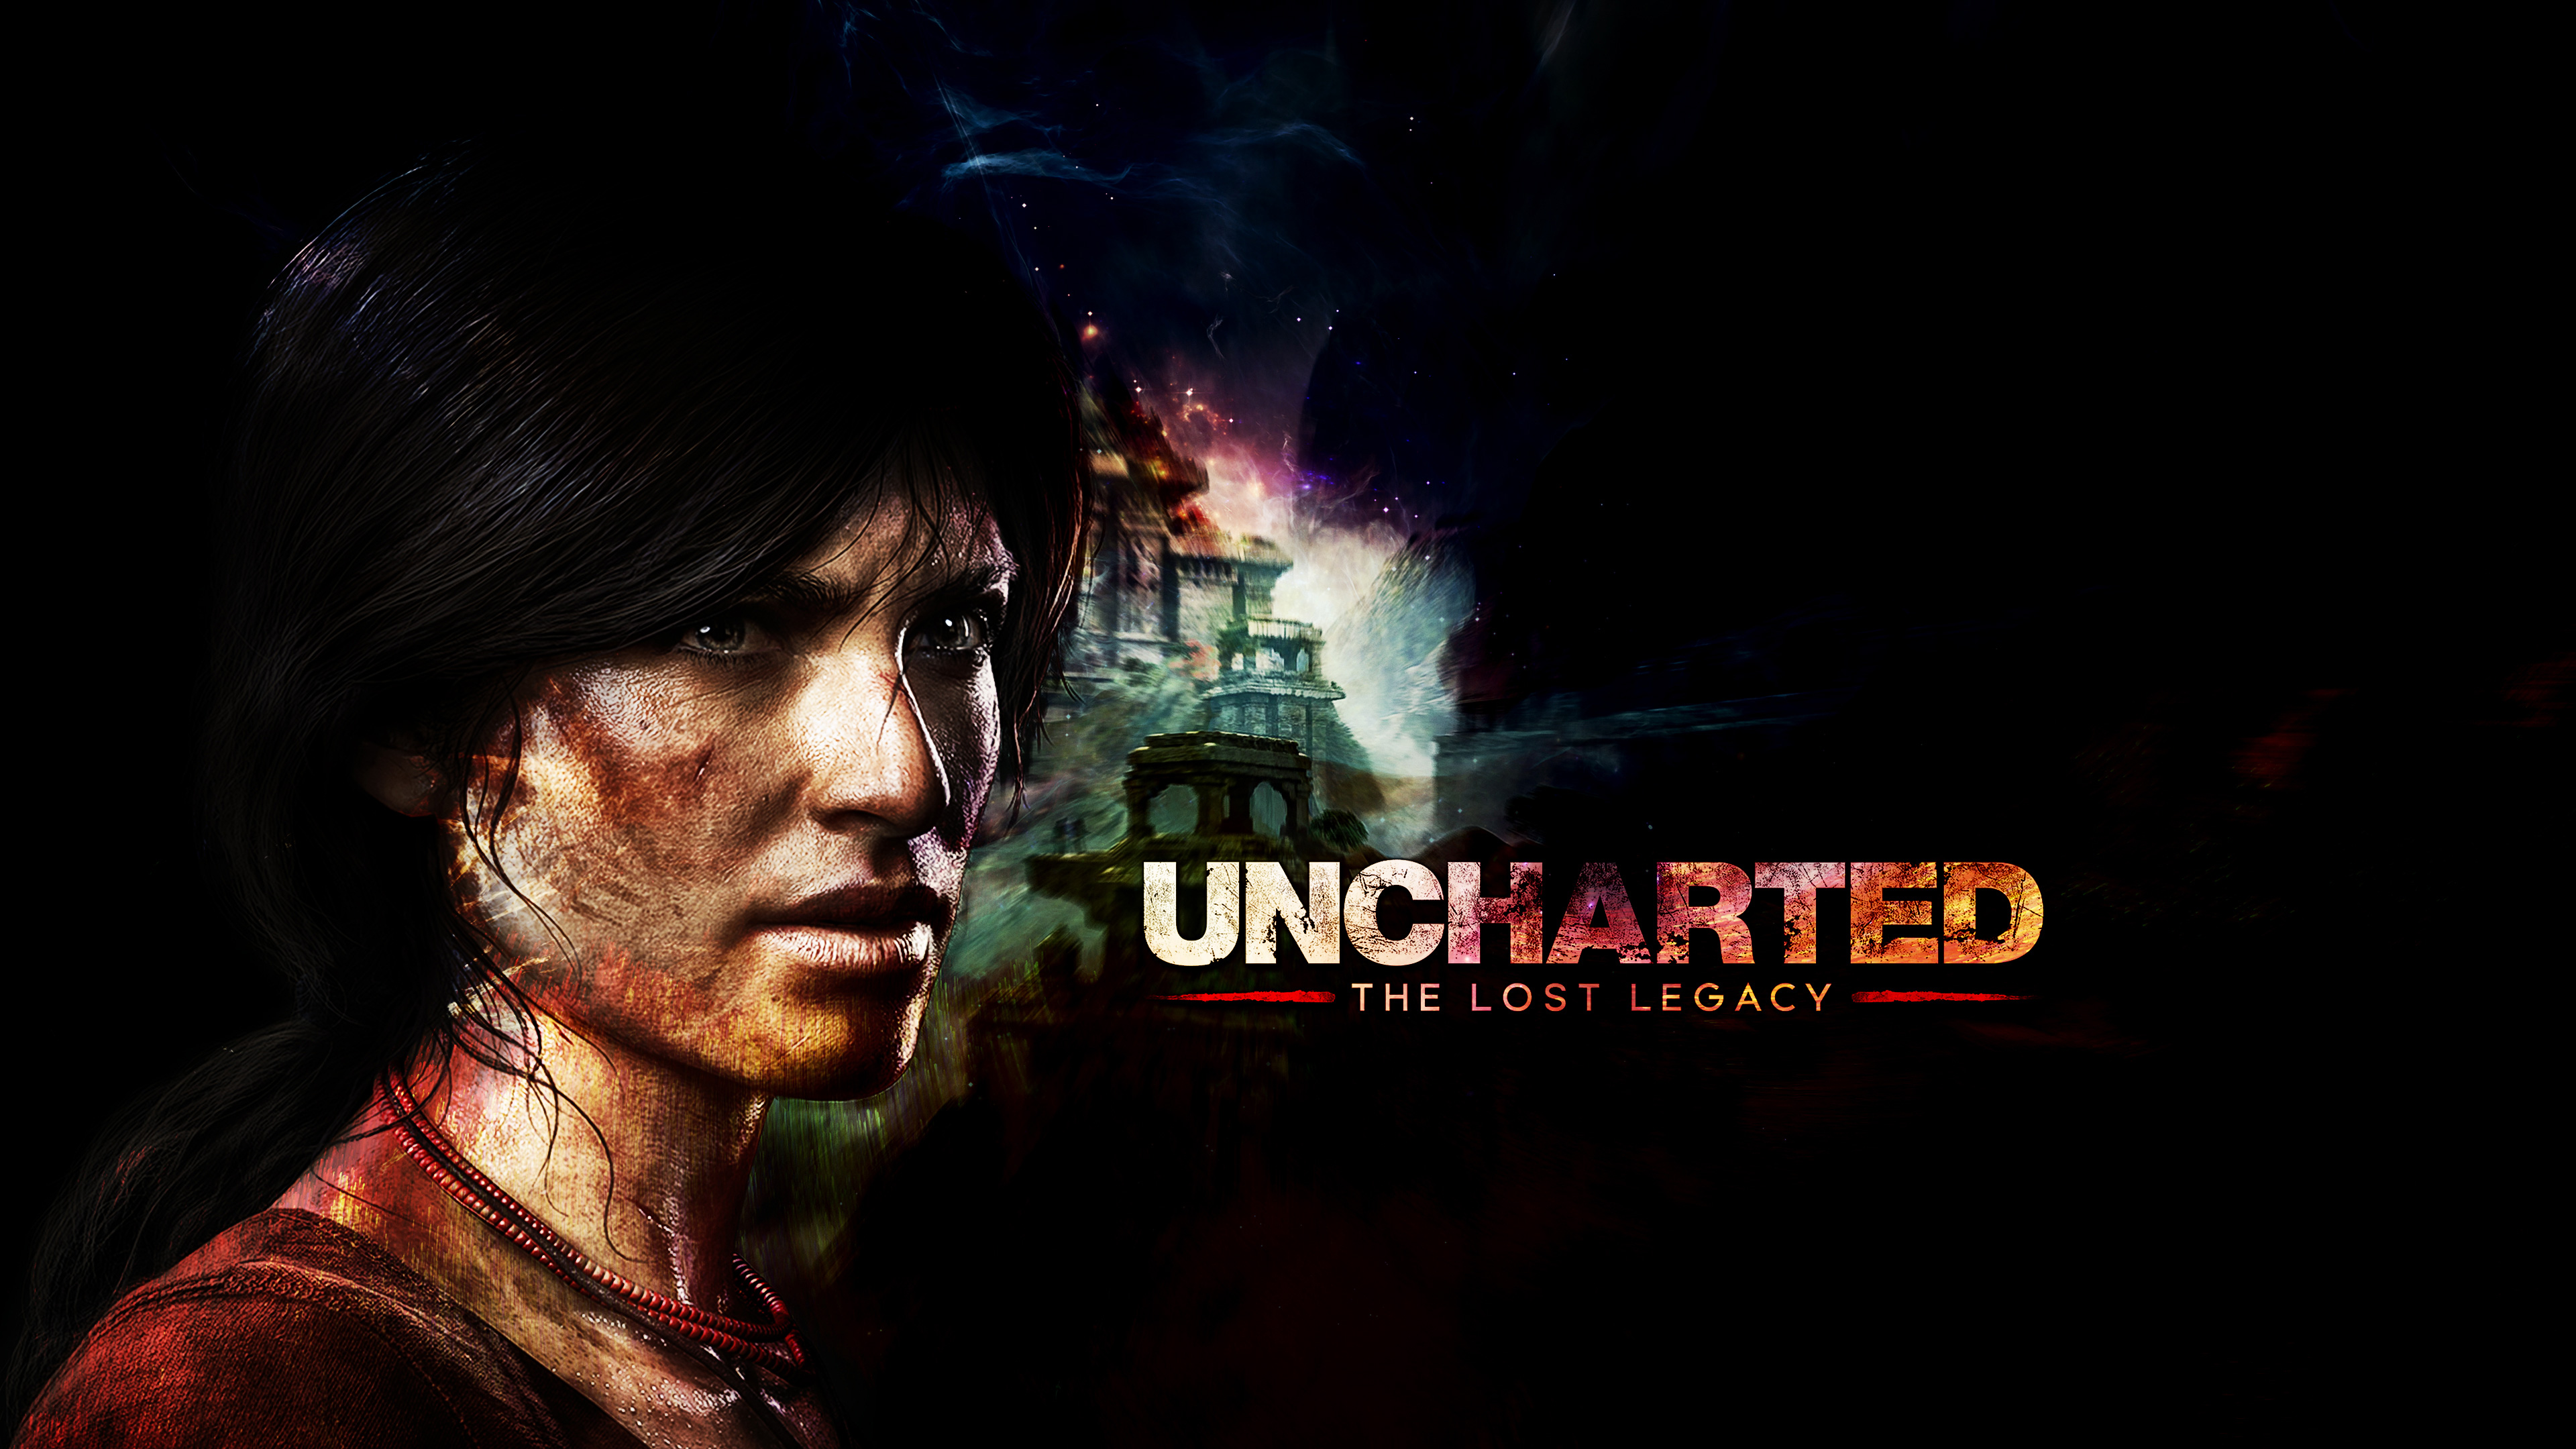 Uncharted Lost Legacy Wallpaper: Chloe Uncharted The Lost Legacy 4k, HD Games, 4k